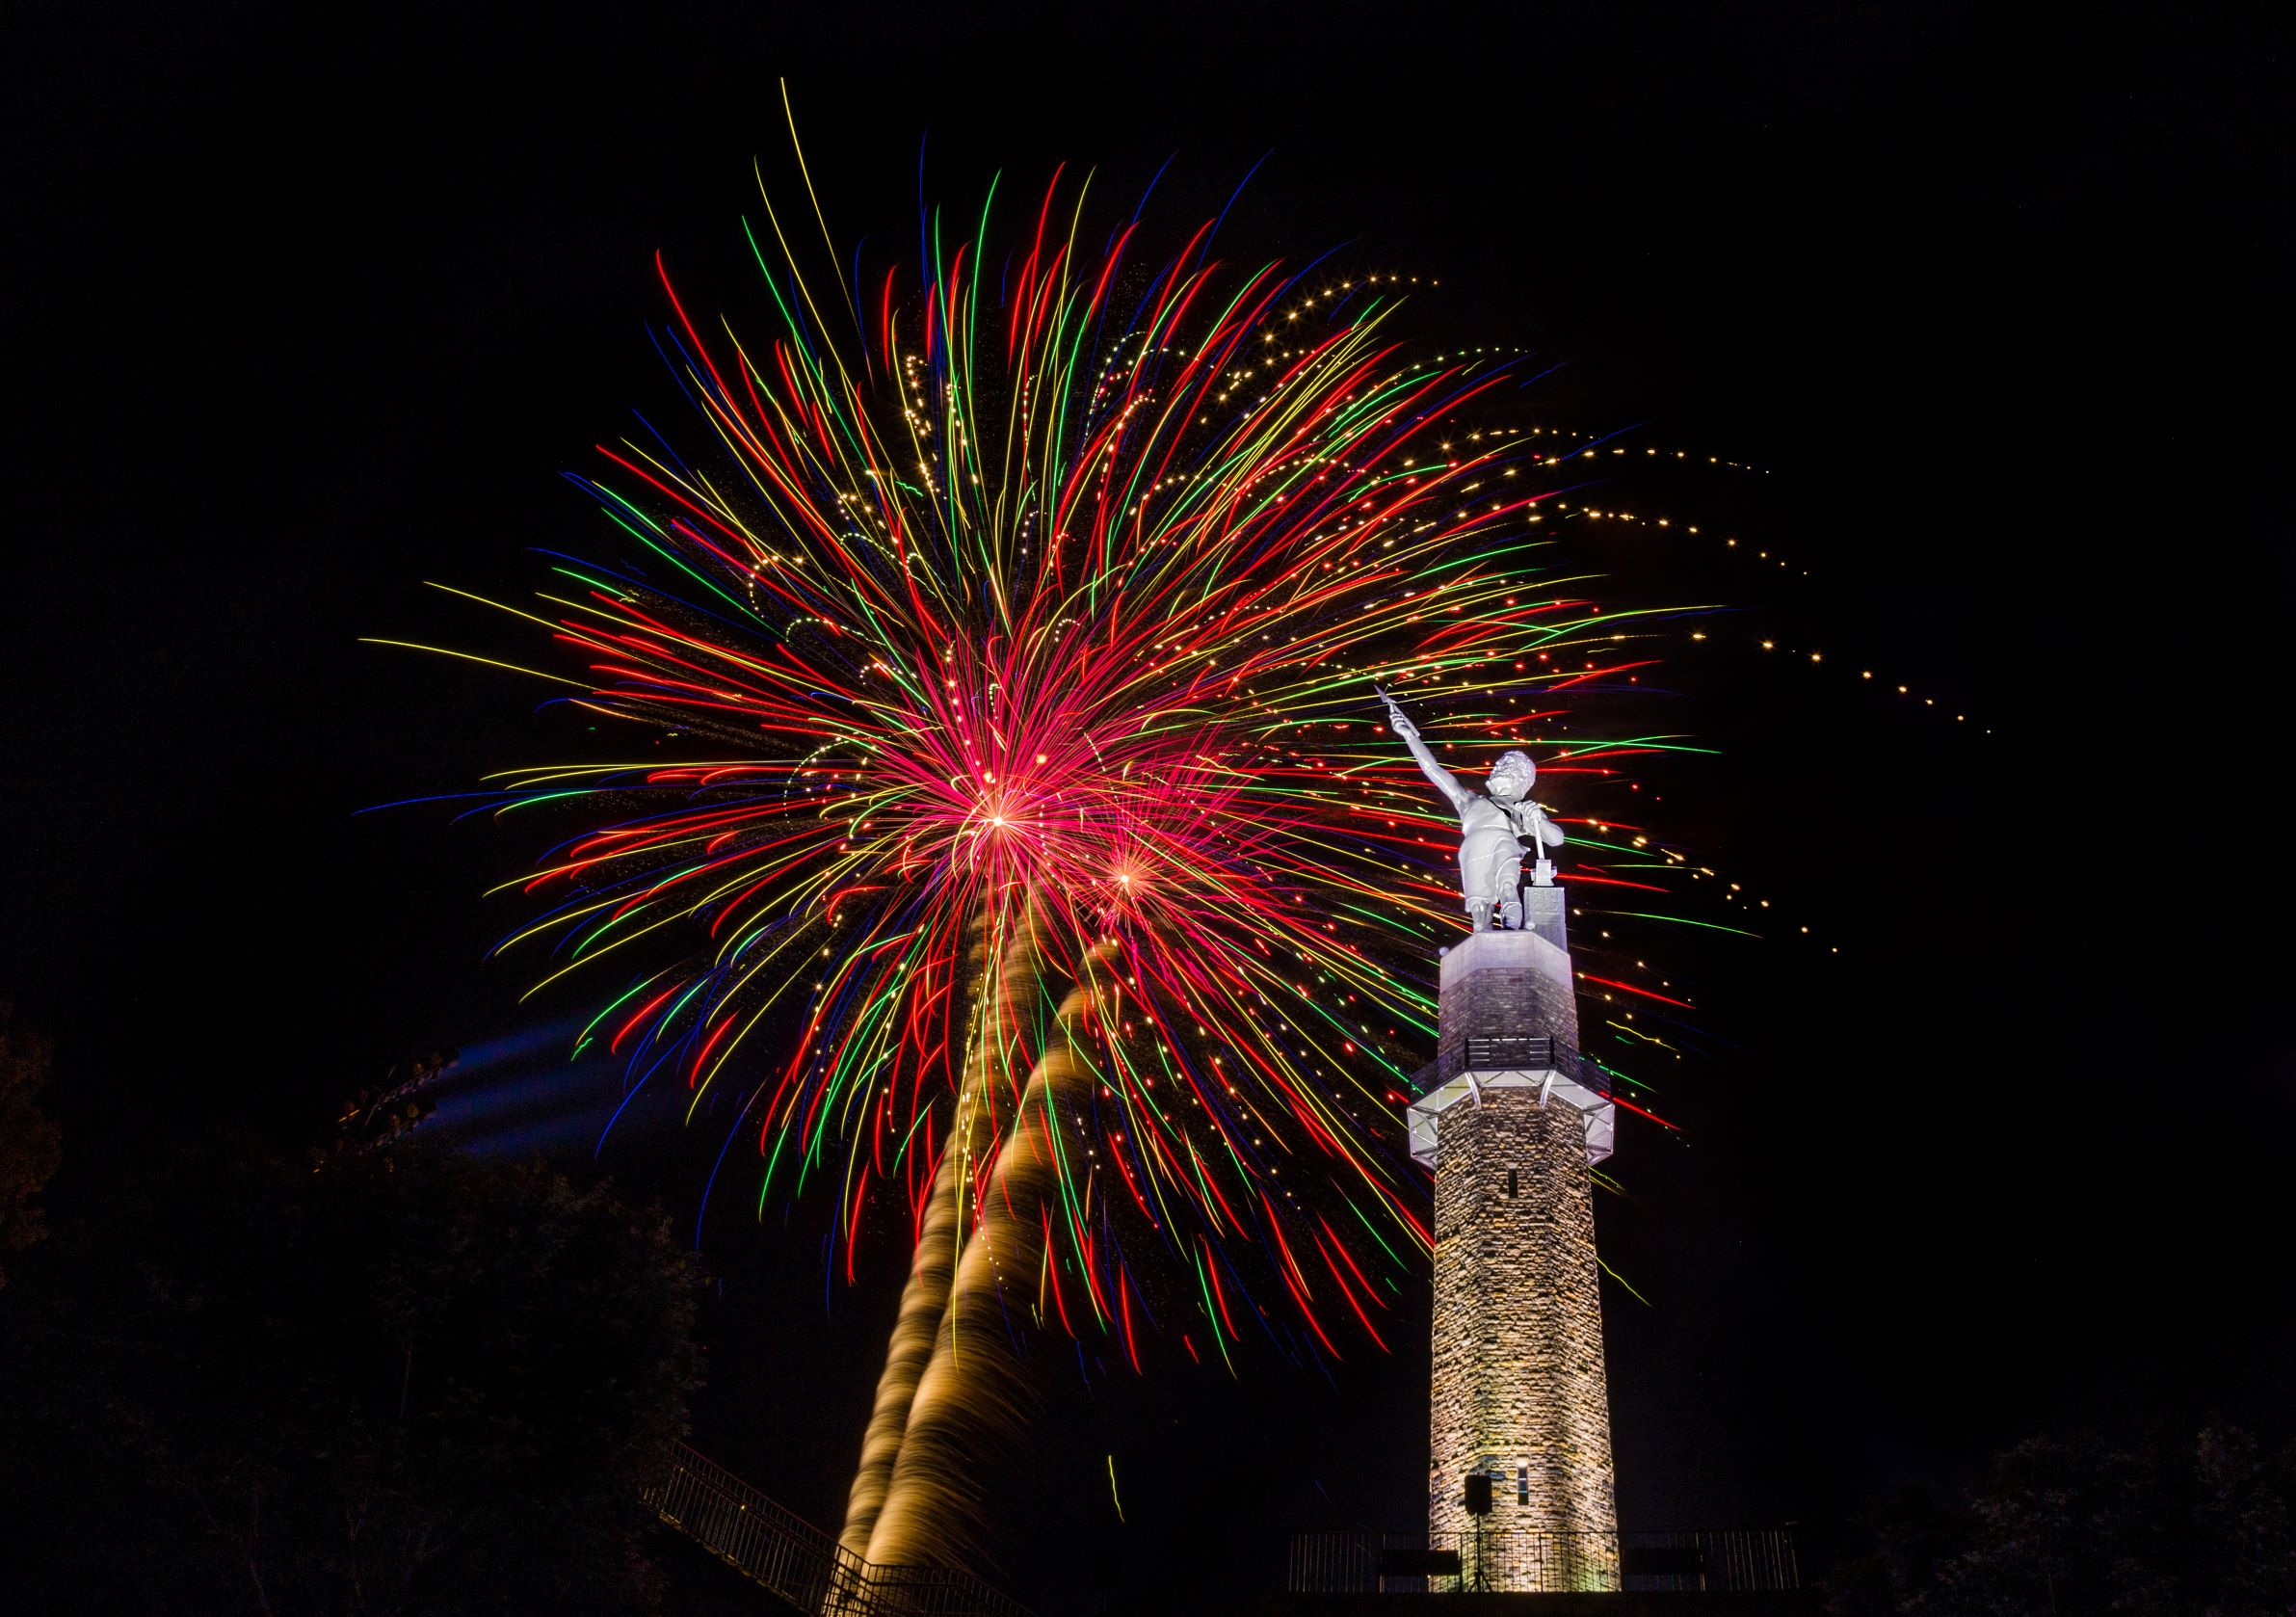 Red, pink, green, and blue fireworks over the statue of Vulcan